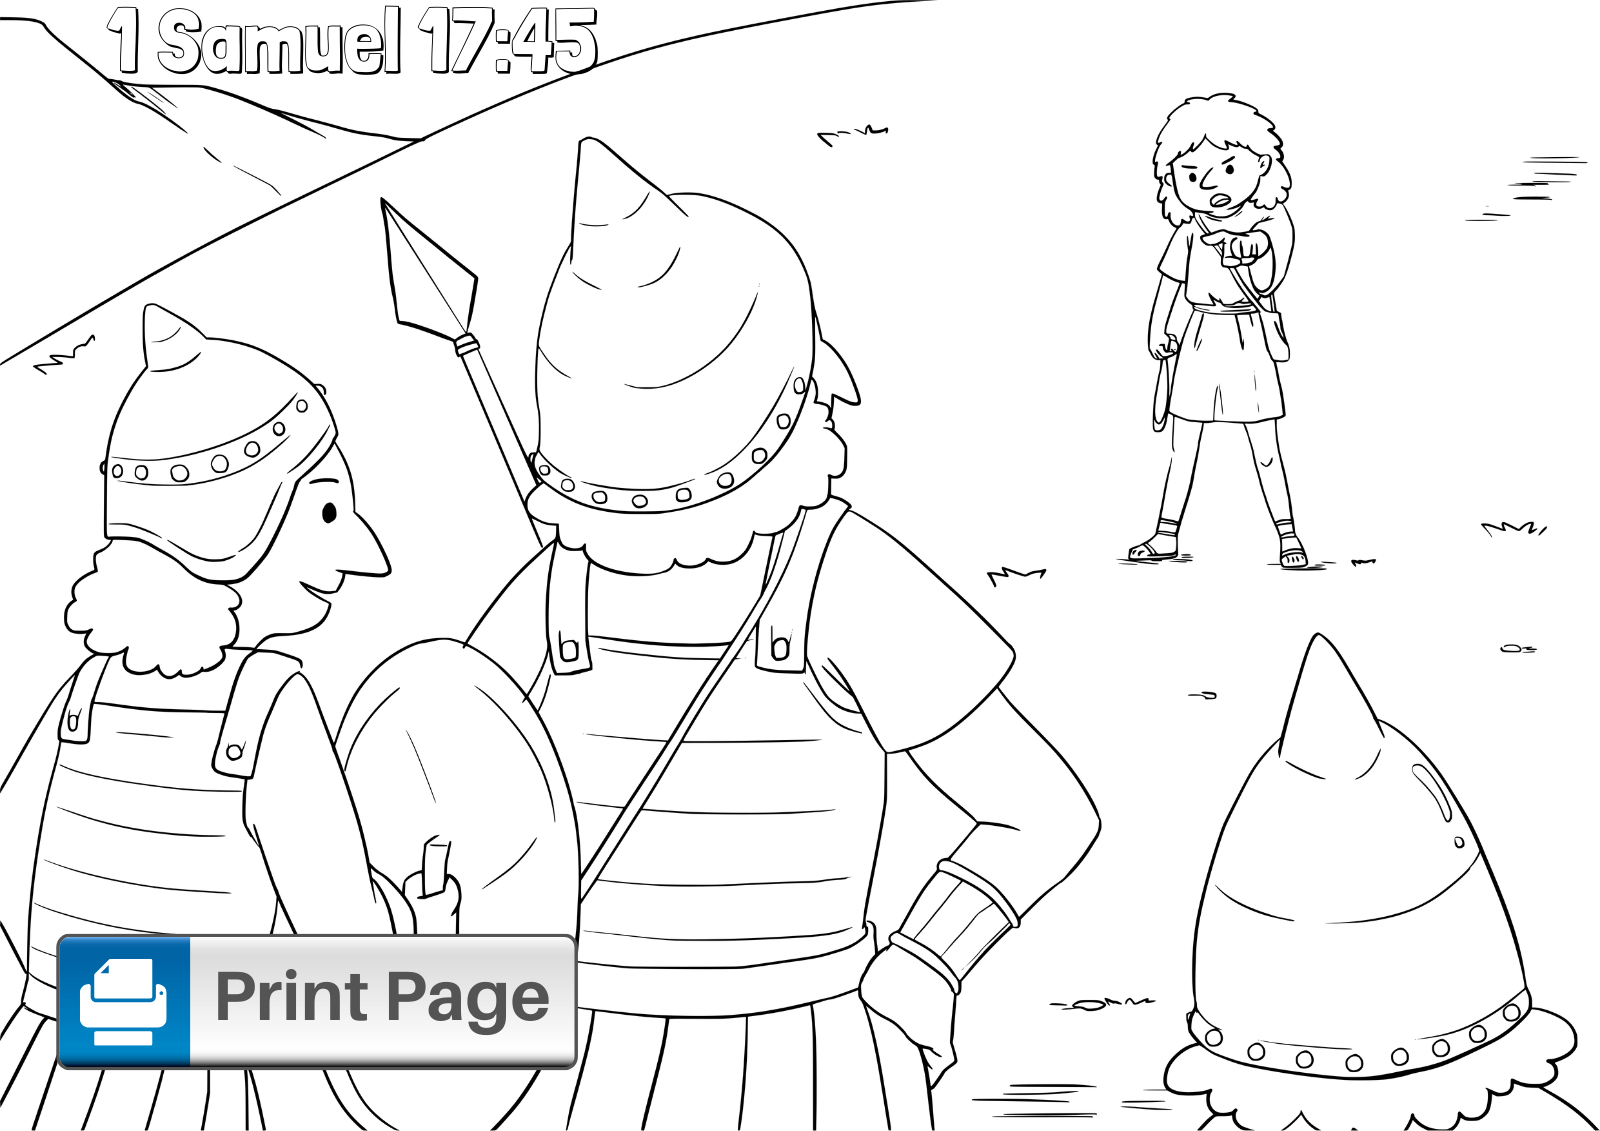 Free Printable David and Goliath Coloring Pages for Kids